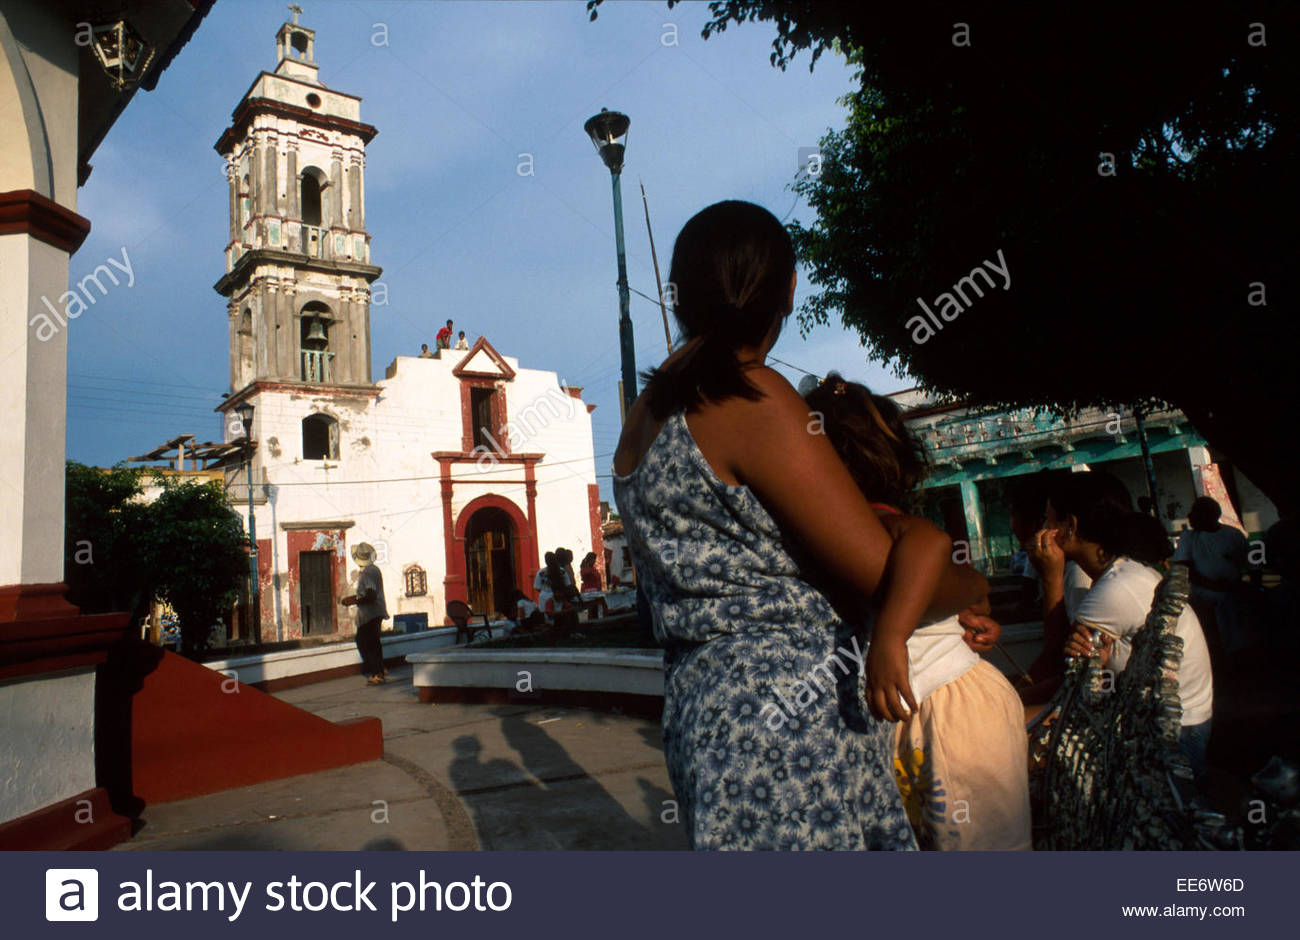 Mexcaltitan, The village square - Stock Image